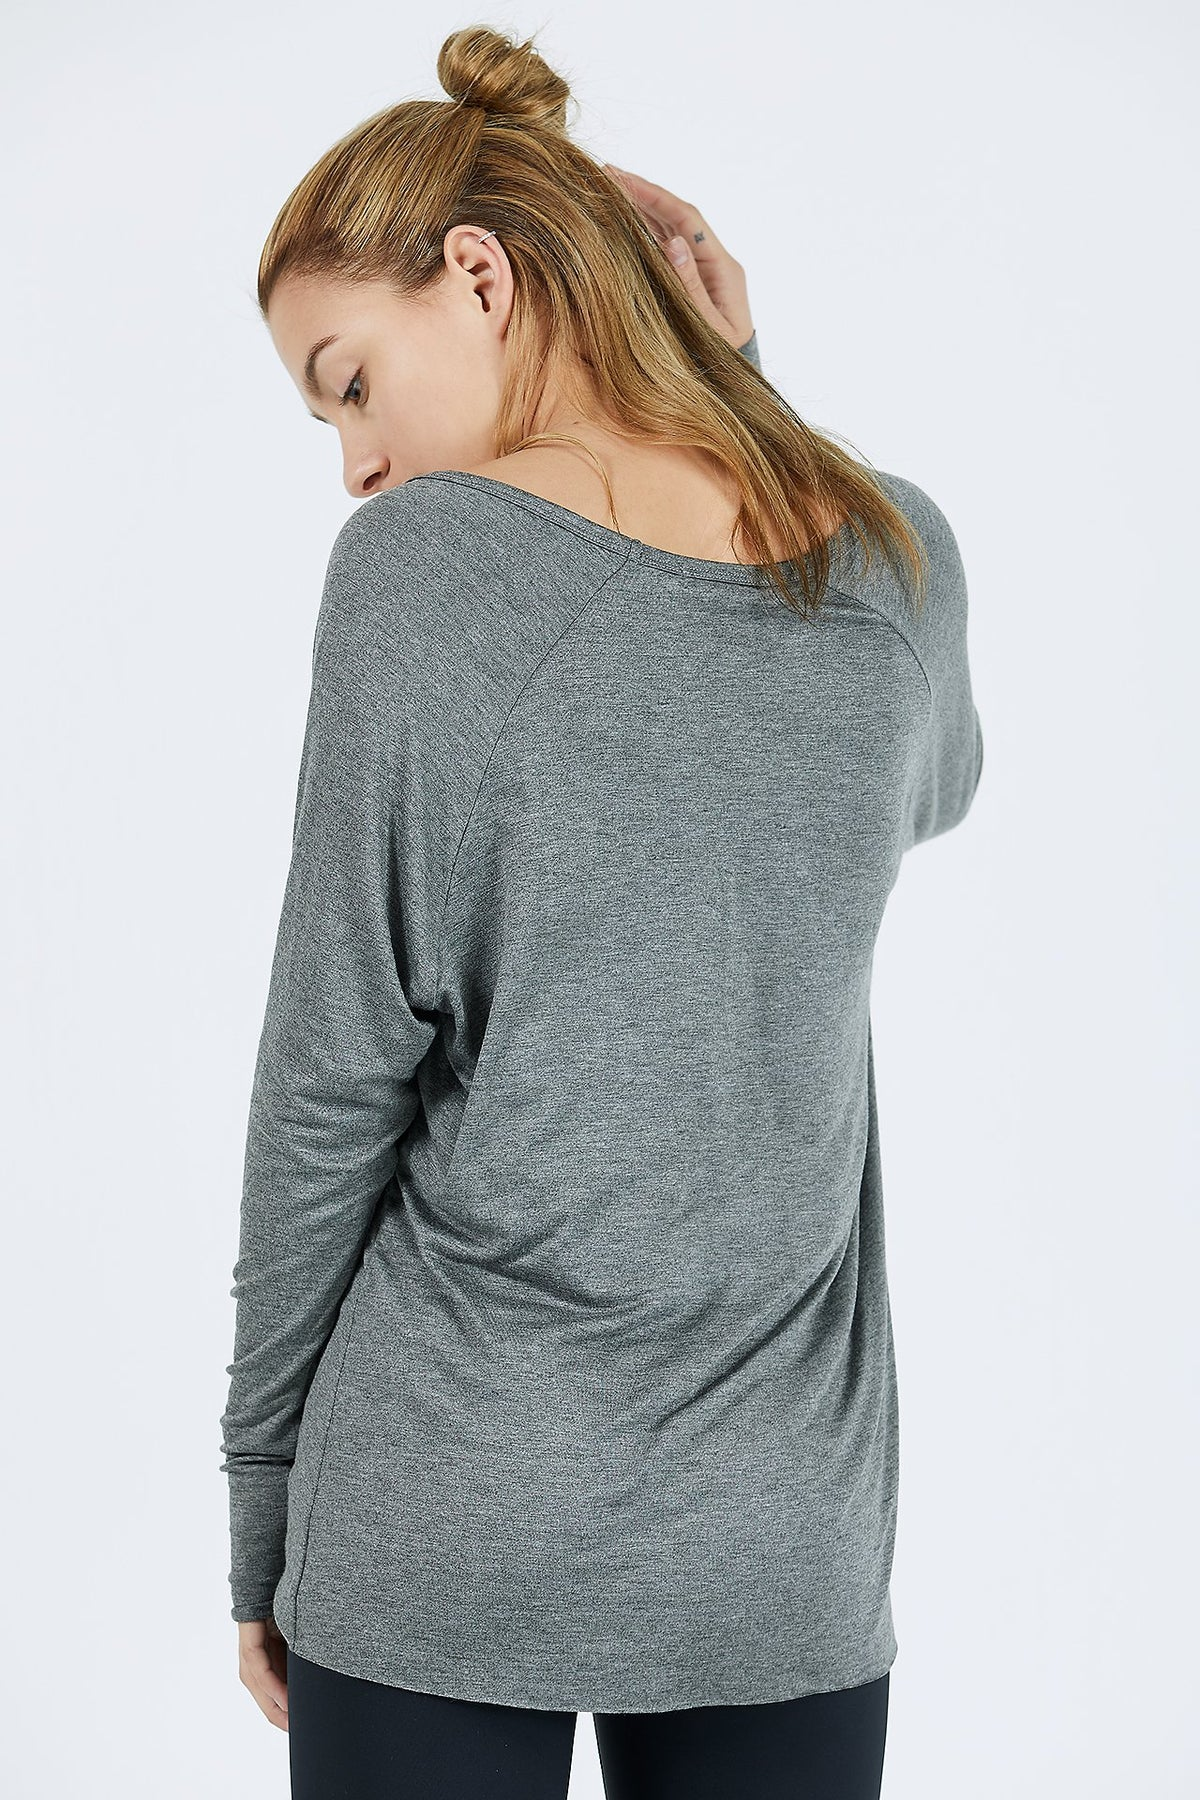 JOAH BROWN For Keeps V- Neck- Gravel